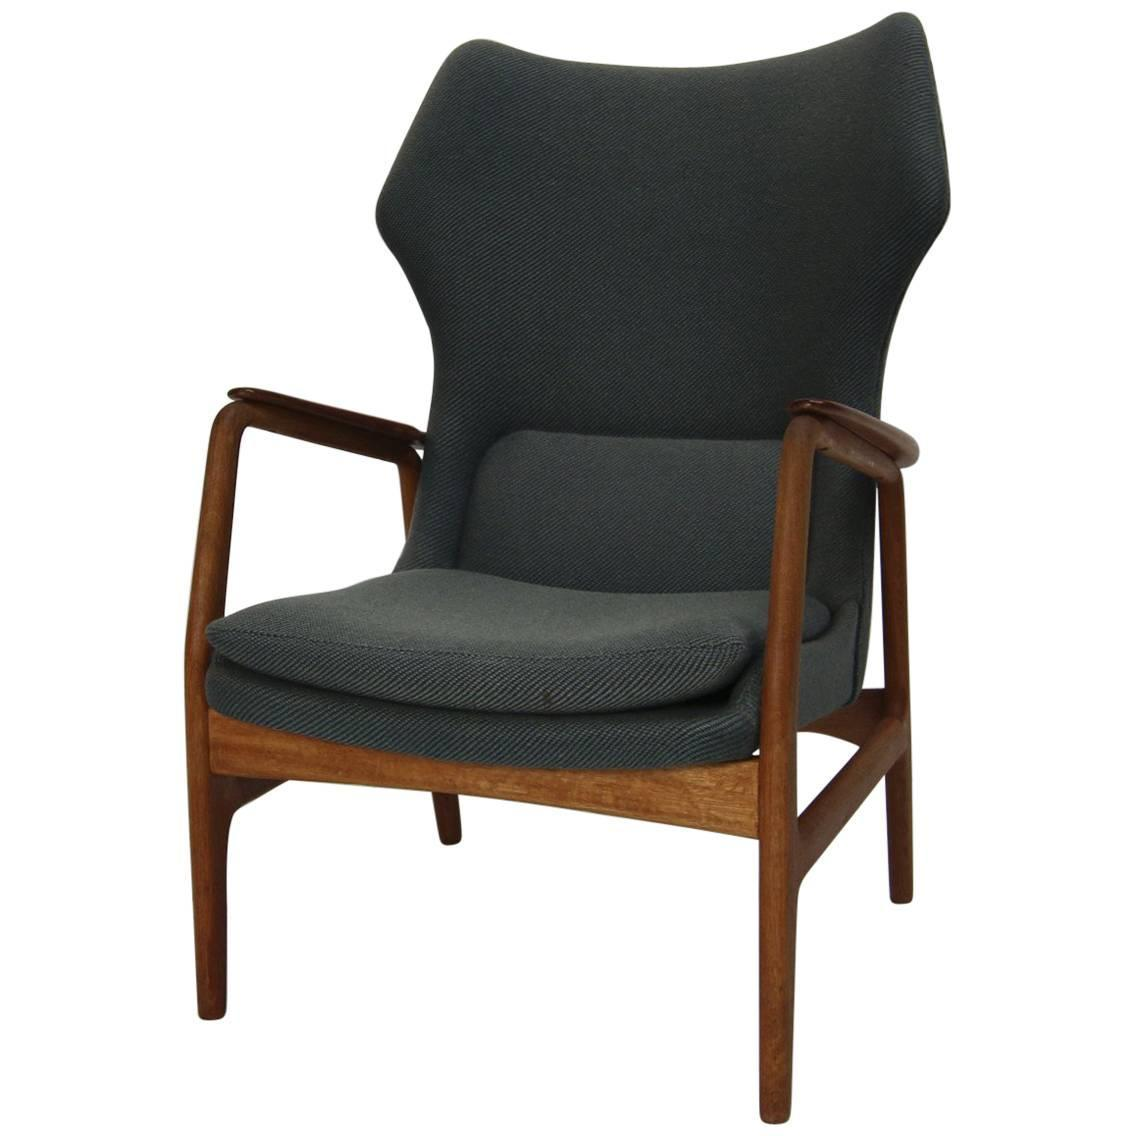 Acapulco chair vintage - Bovenkamp Wingback Chair Male Model By Aksel Bender Madsen